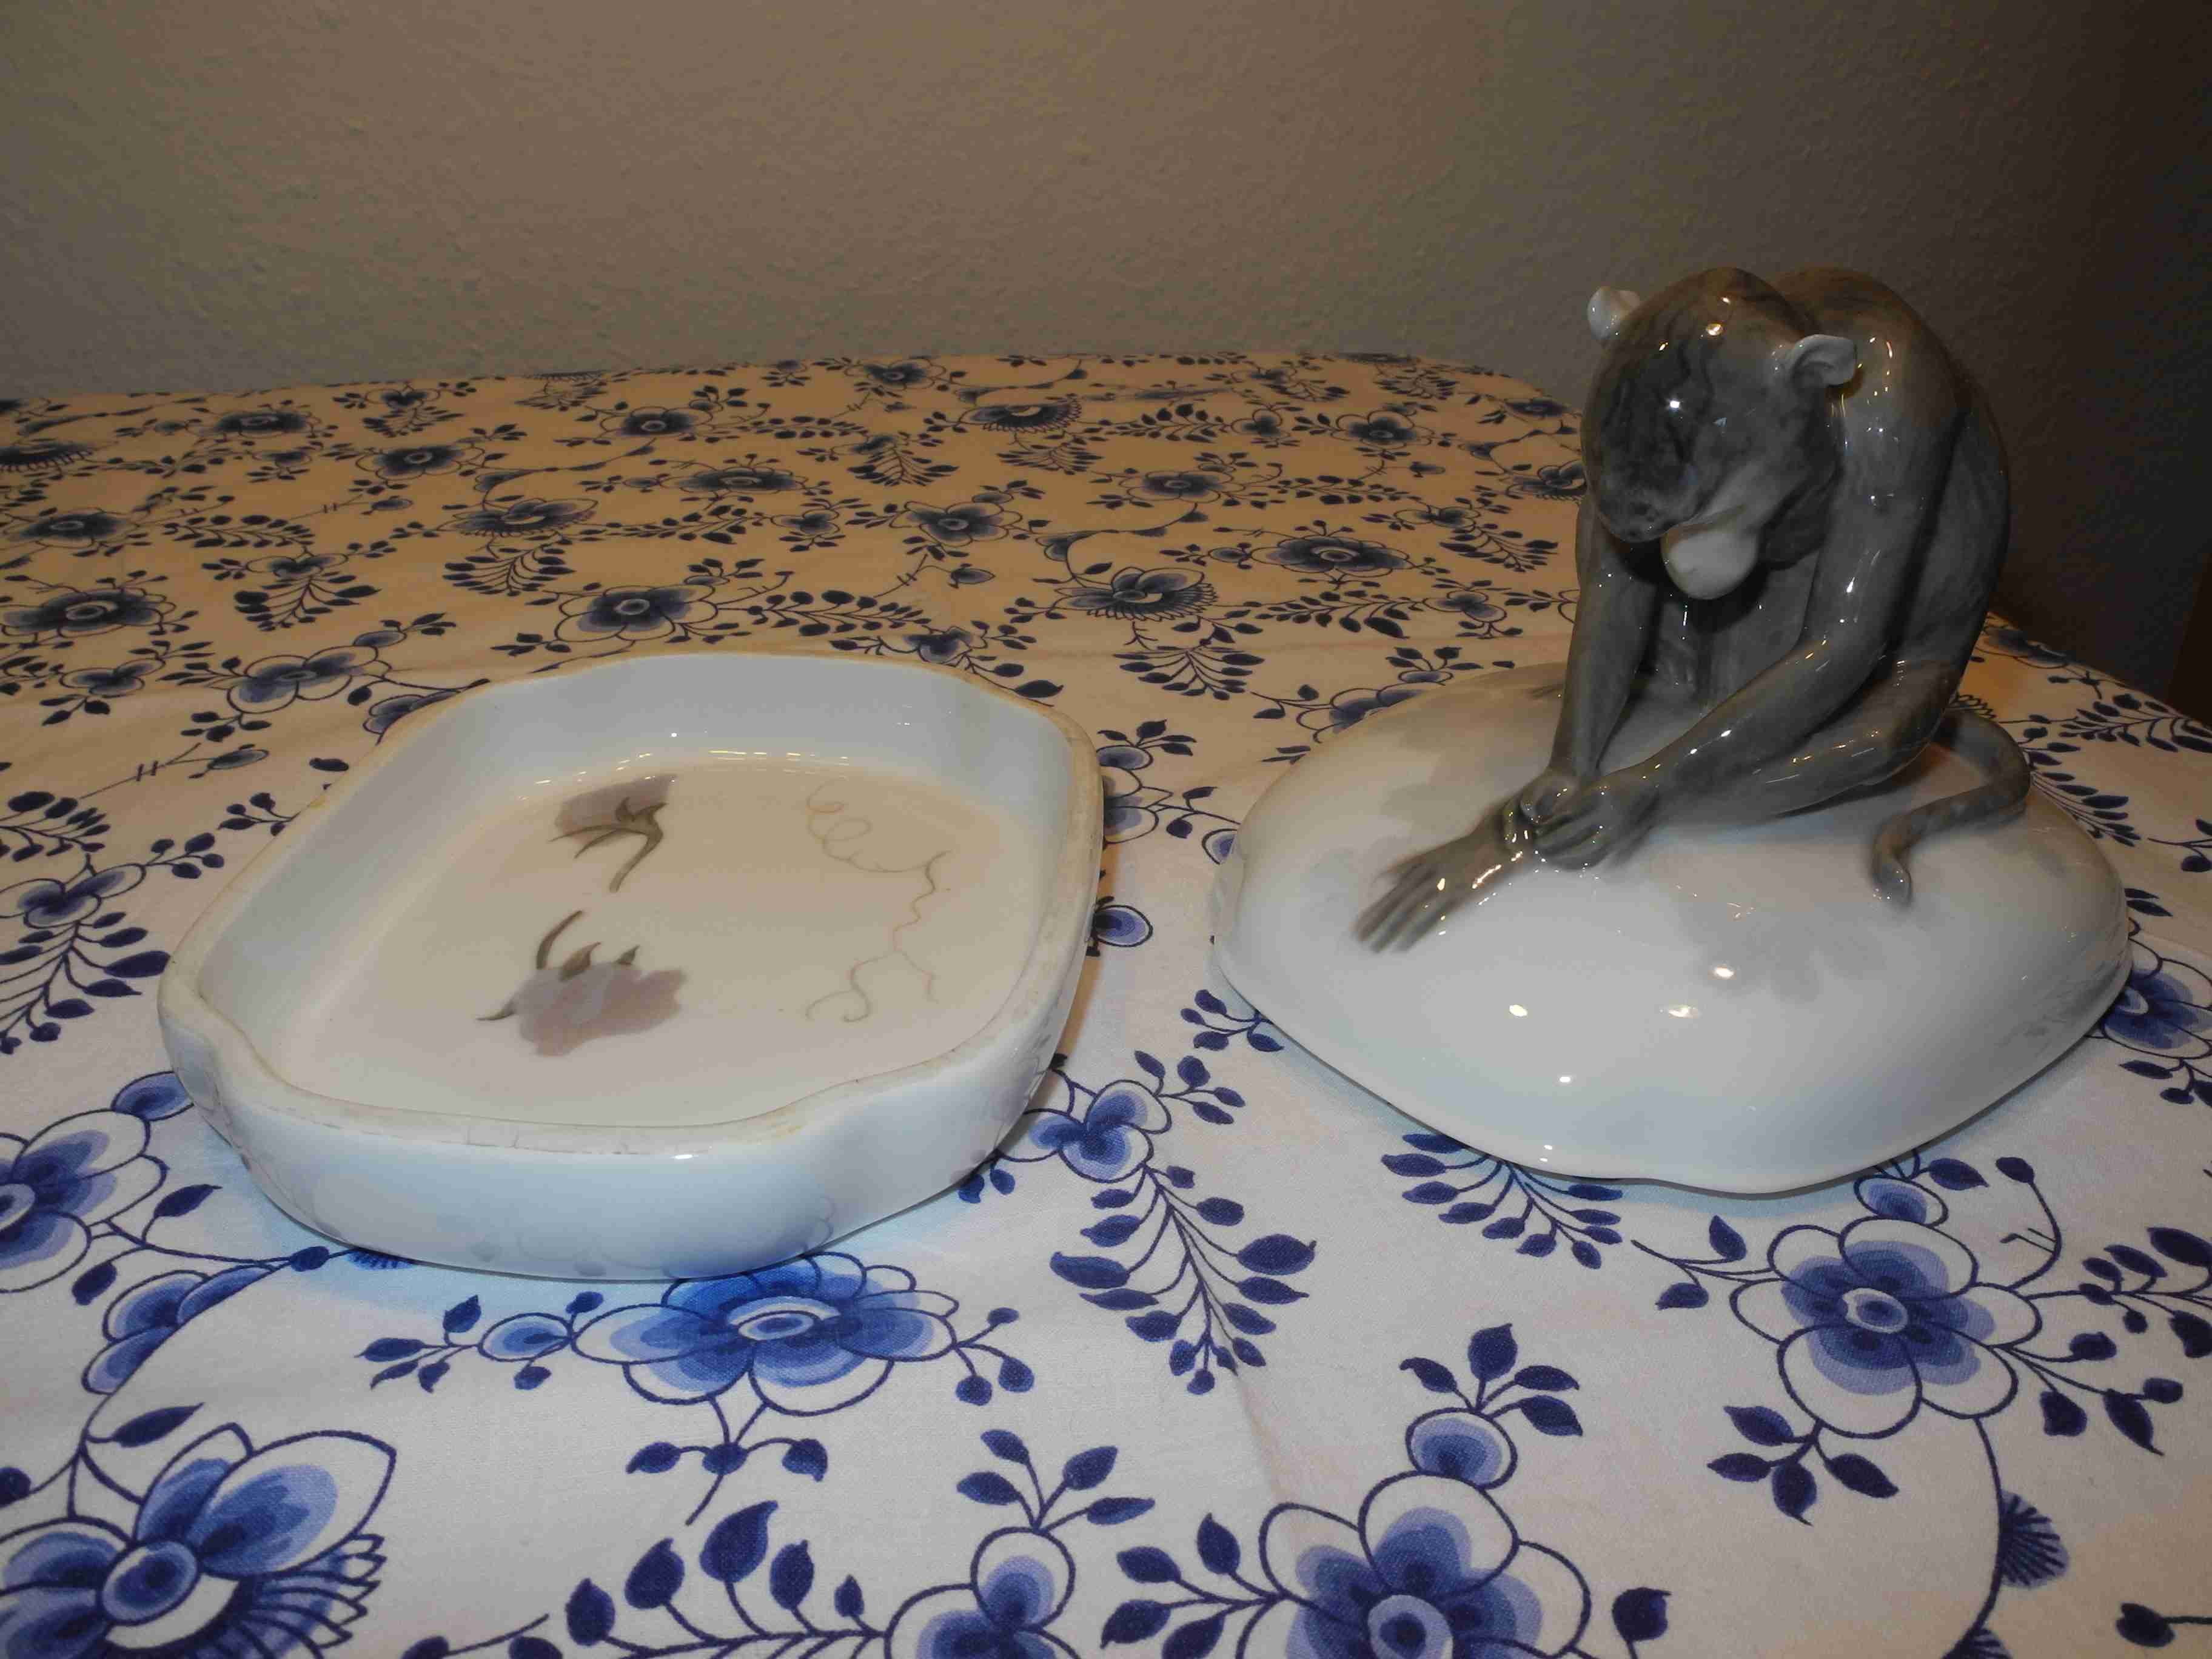 Monkey lidded dish